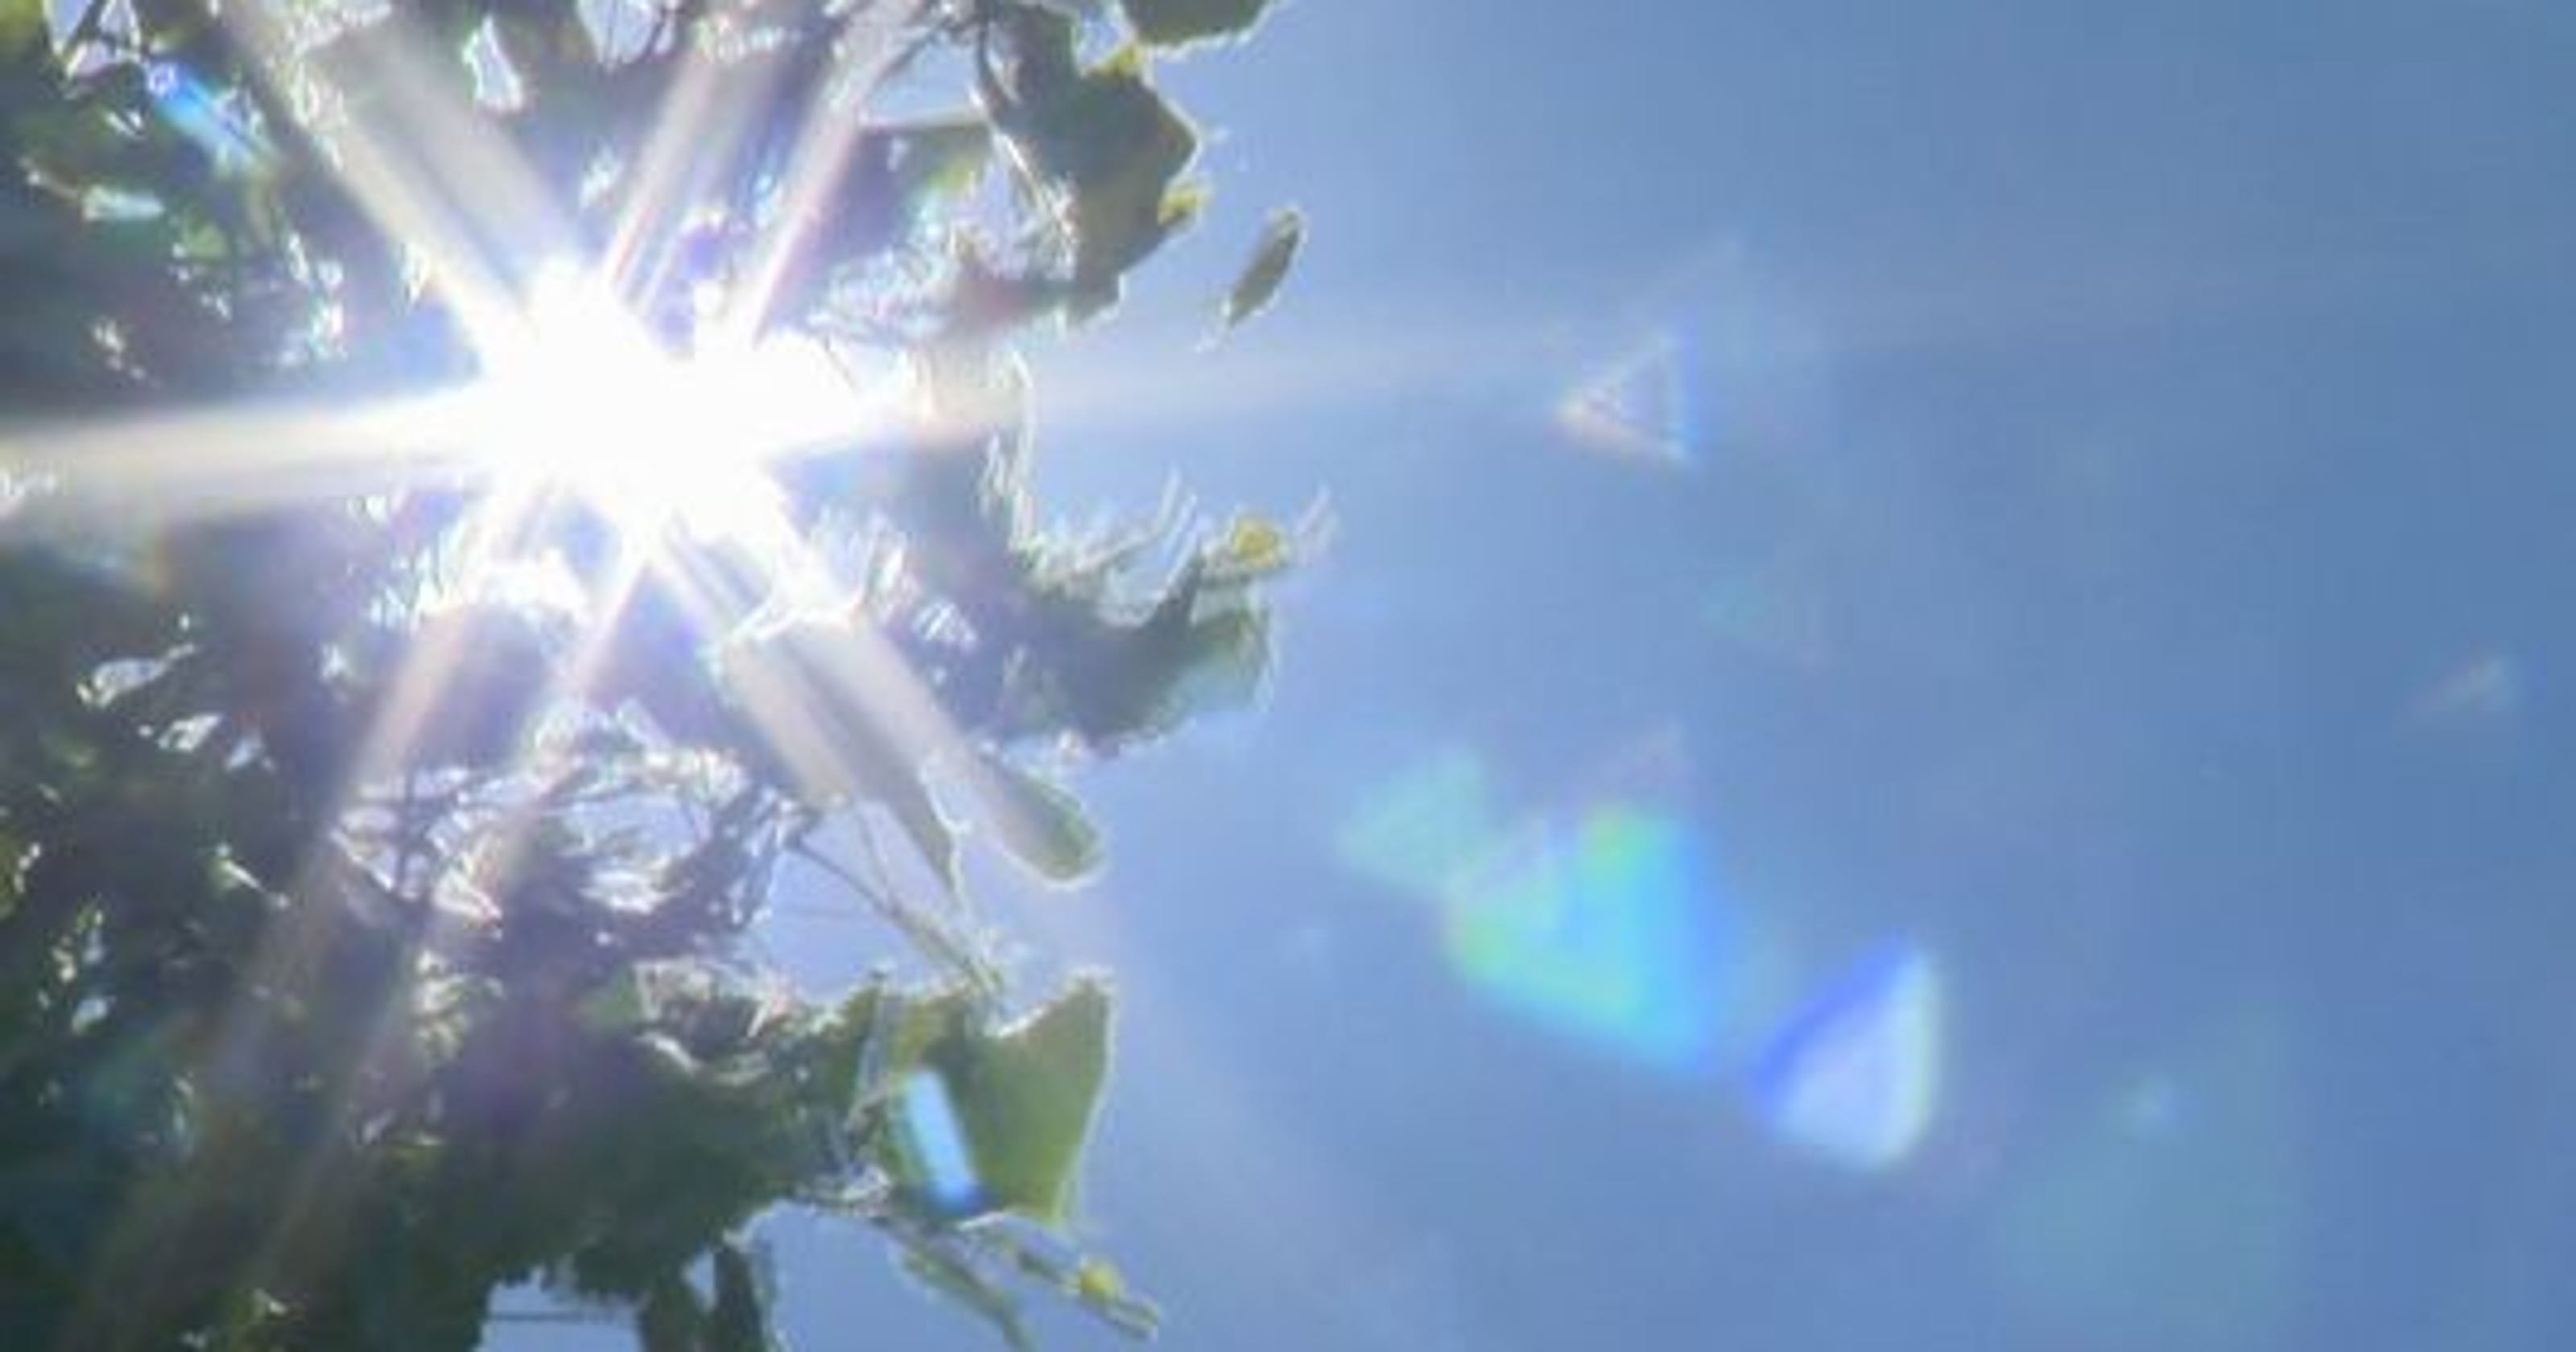 9NEWS: What to expect from the weather this summer